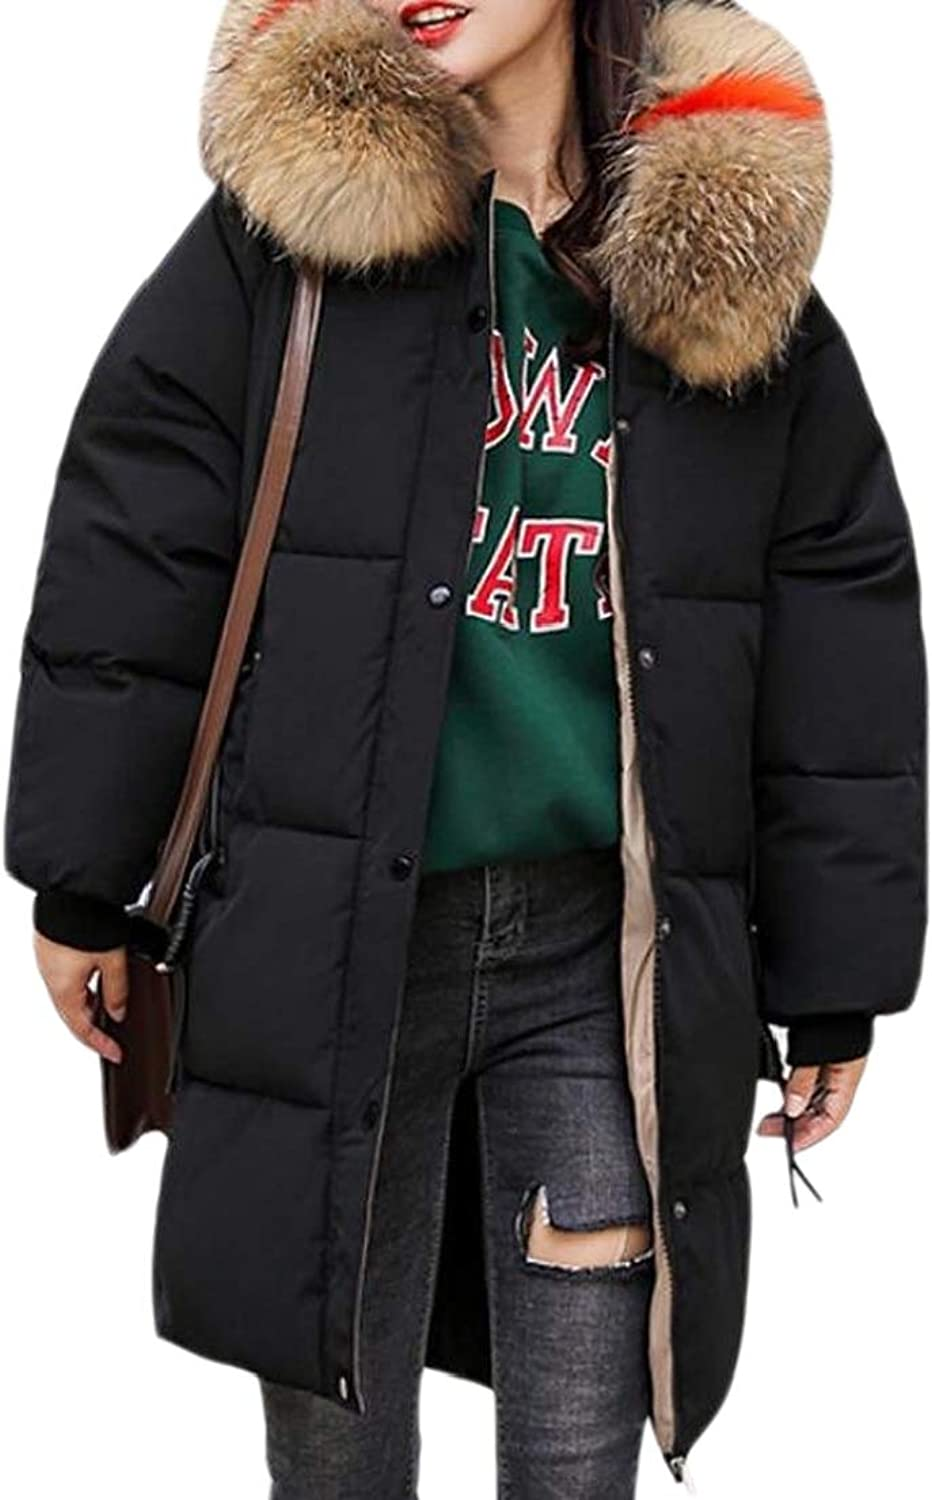 Generic Womens Winter Puffer Faux Fur Hooded Mid Length Parkas Down Coat